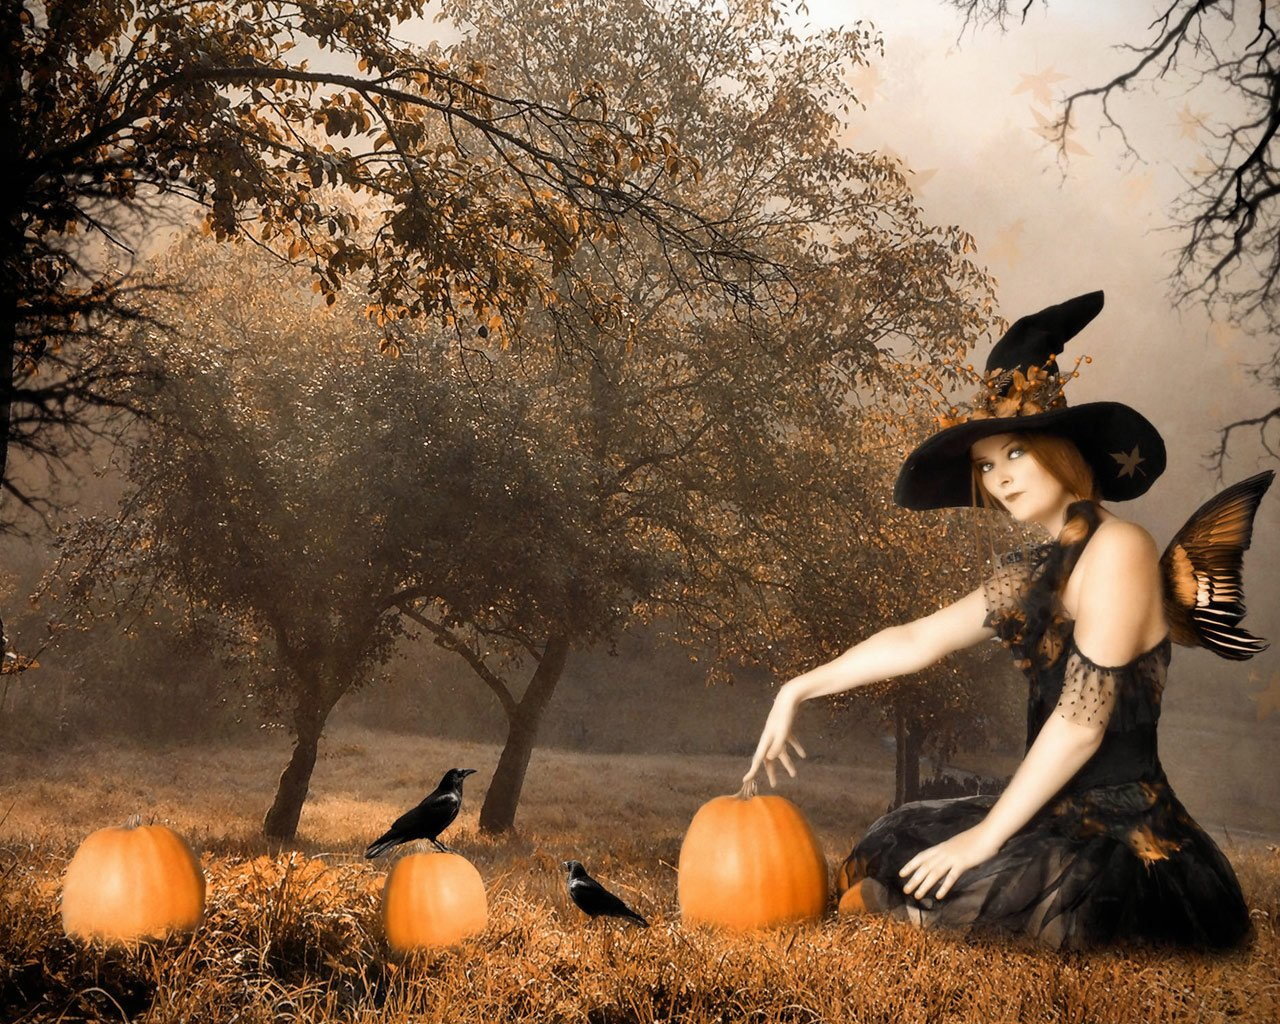 Halloween Witch Desktop Backgrounds Images Pictures   Becuo 1280x1024